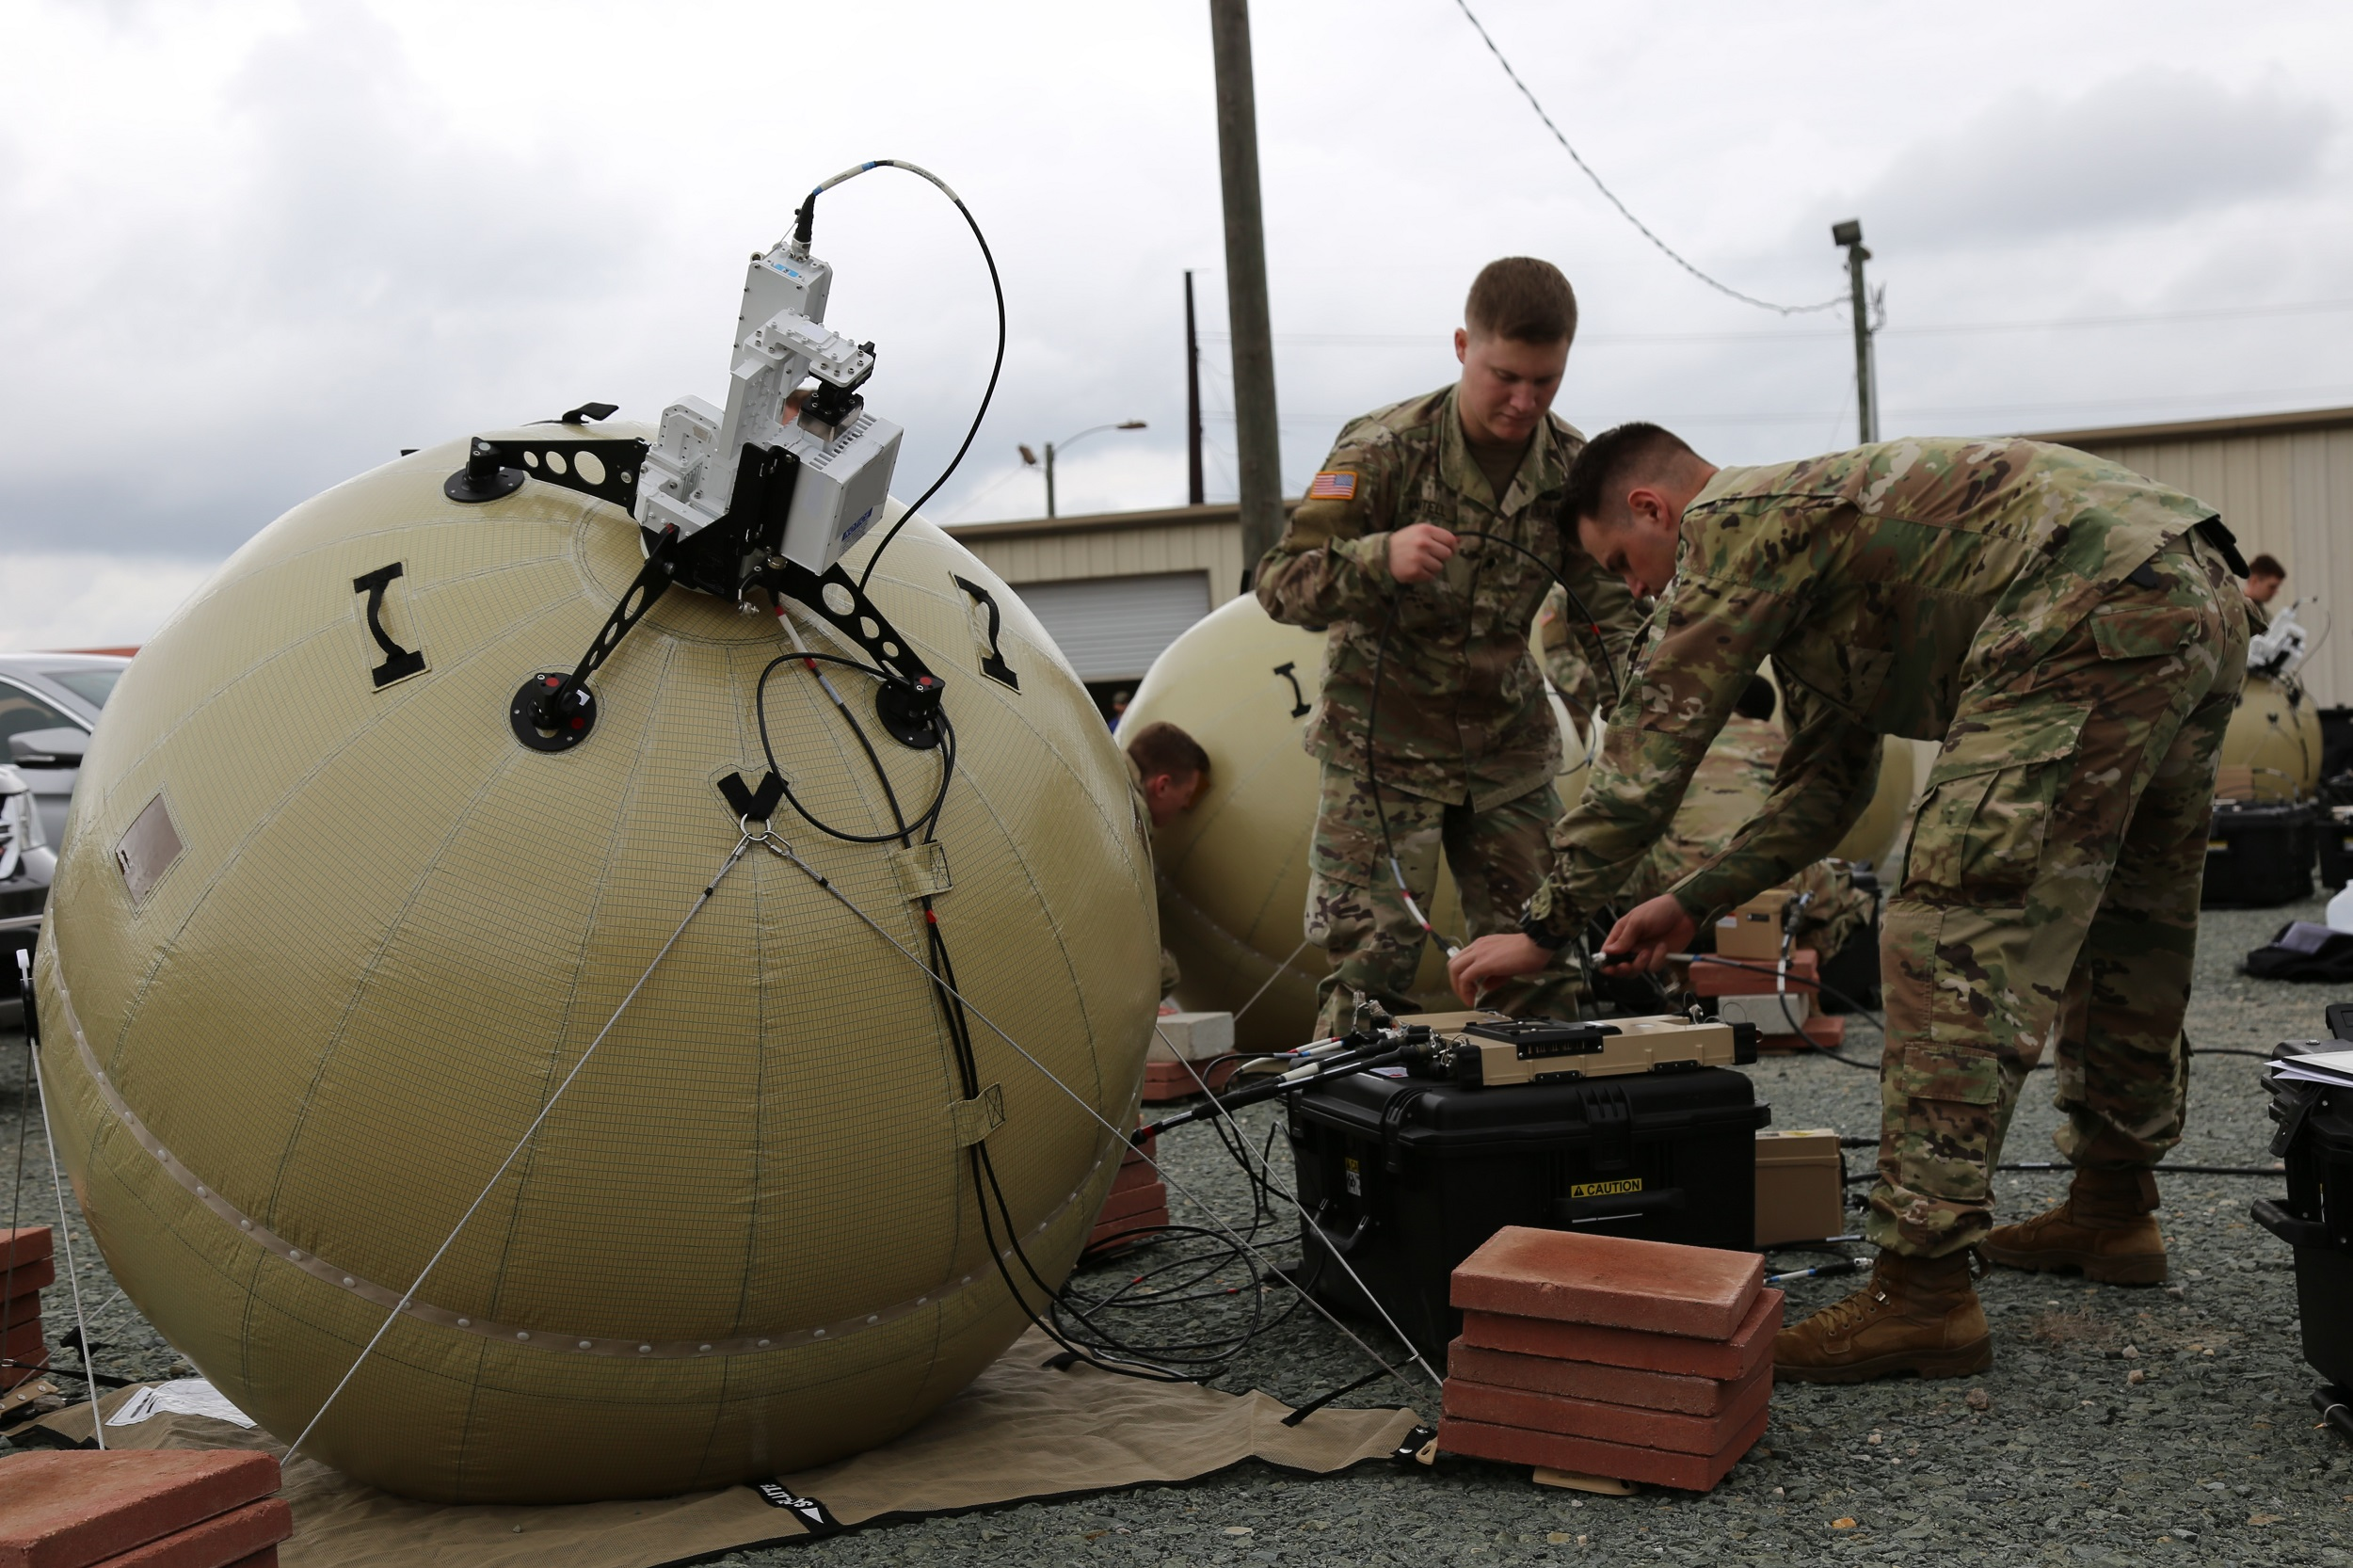 In support of initial entry and other tactical edge missions, PM Tactical Network/PEO C3T equipped the first unit -- the 3rd Brigade Combat Team, 82nd Airborne Division -- with the new inflatable satellite communications system known as Transportable Tactical Command Communications, or T2C2, to enable expeditionary mission command and situational awareness in the heart of evolving fights. (U.S. Army photo by Amy Walker, February 21, 2018 )